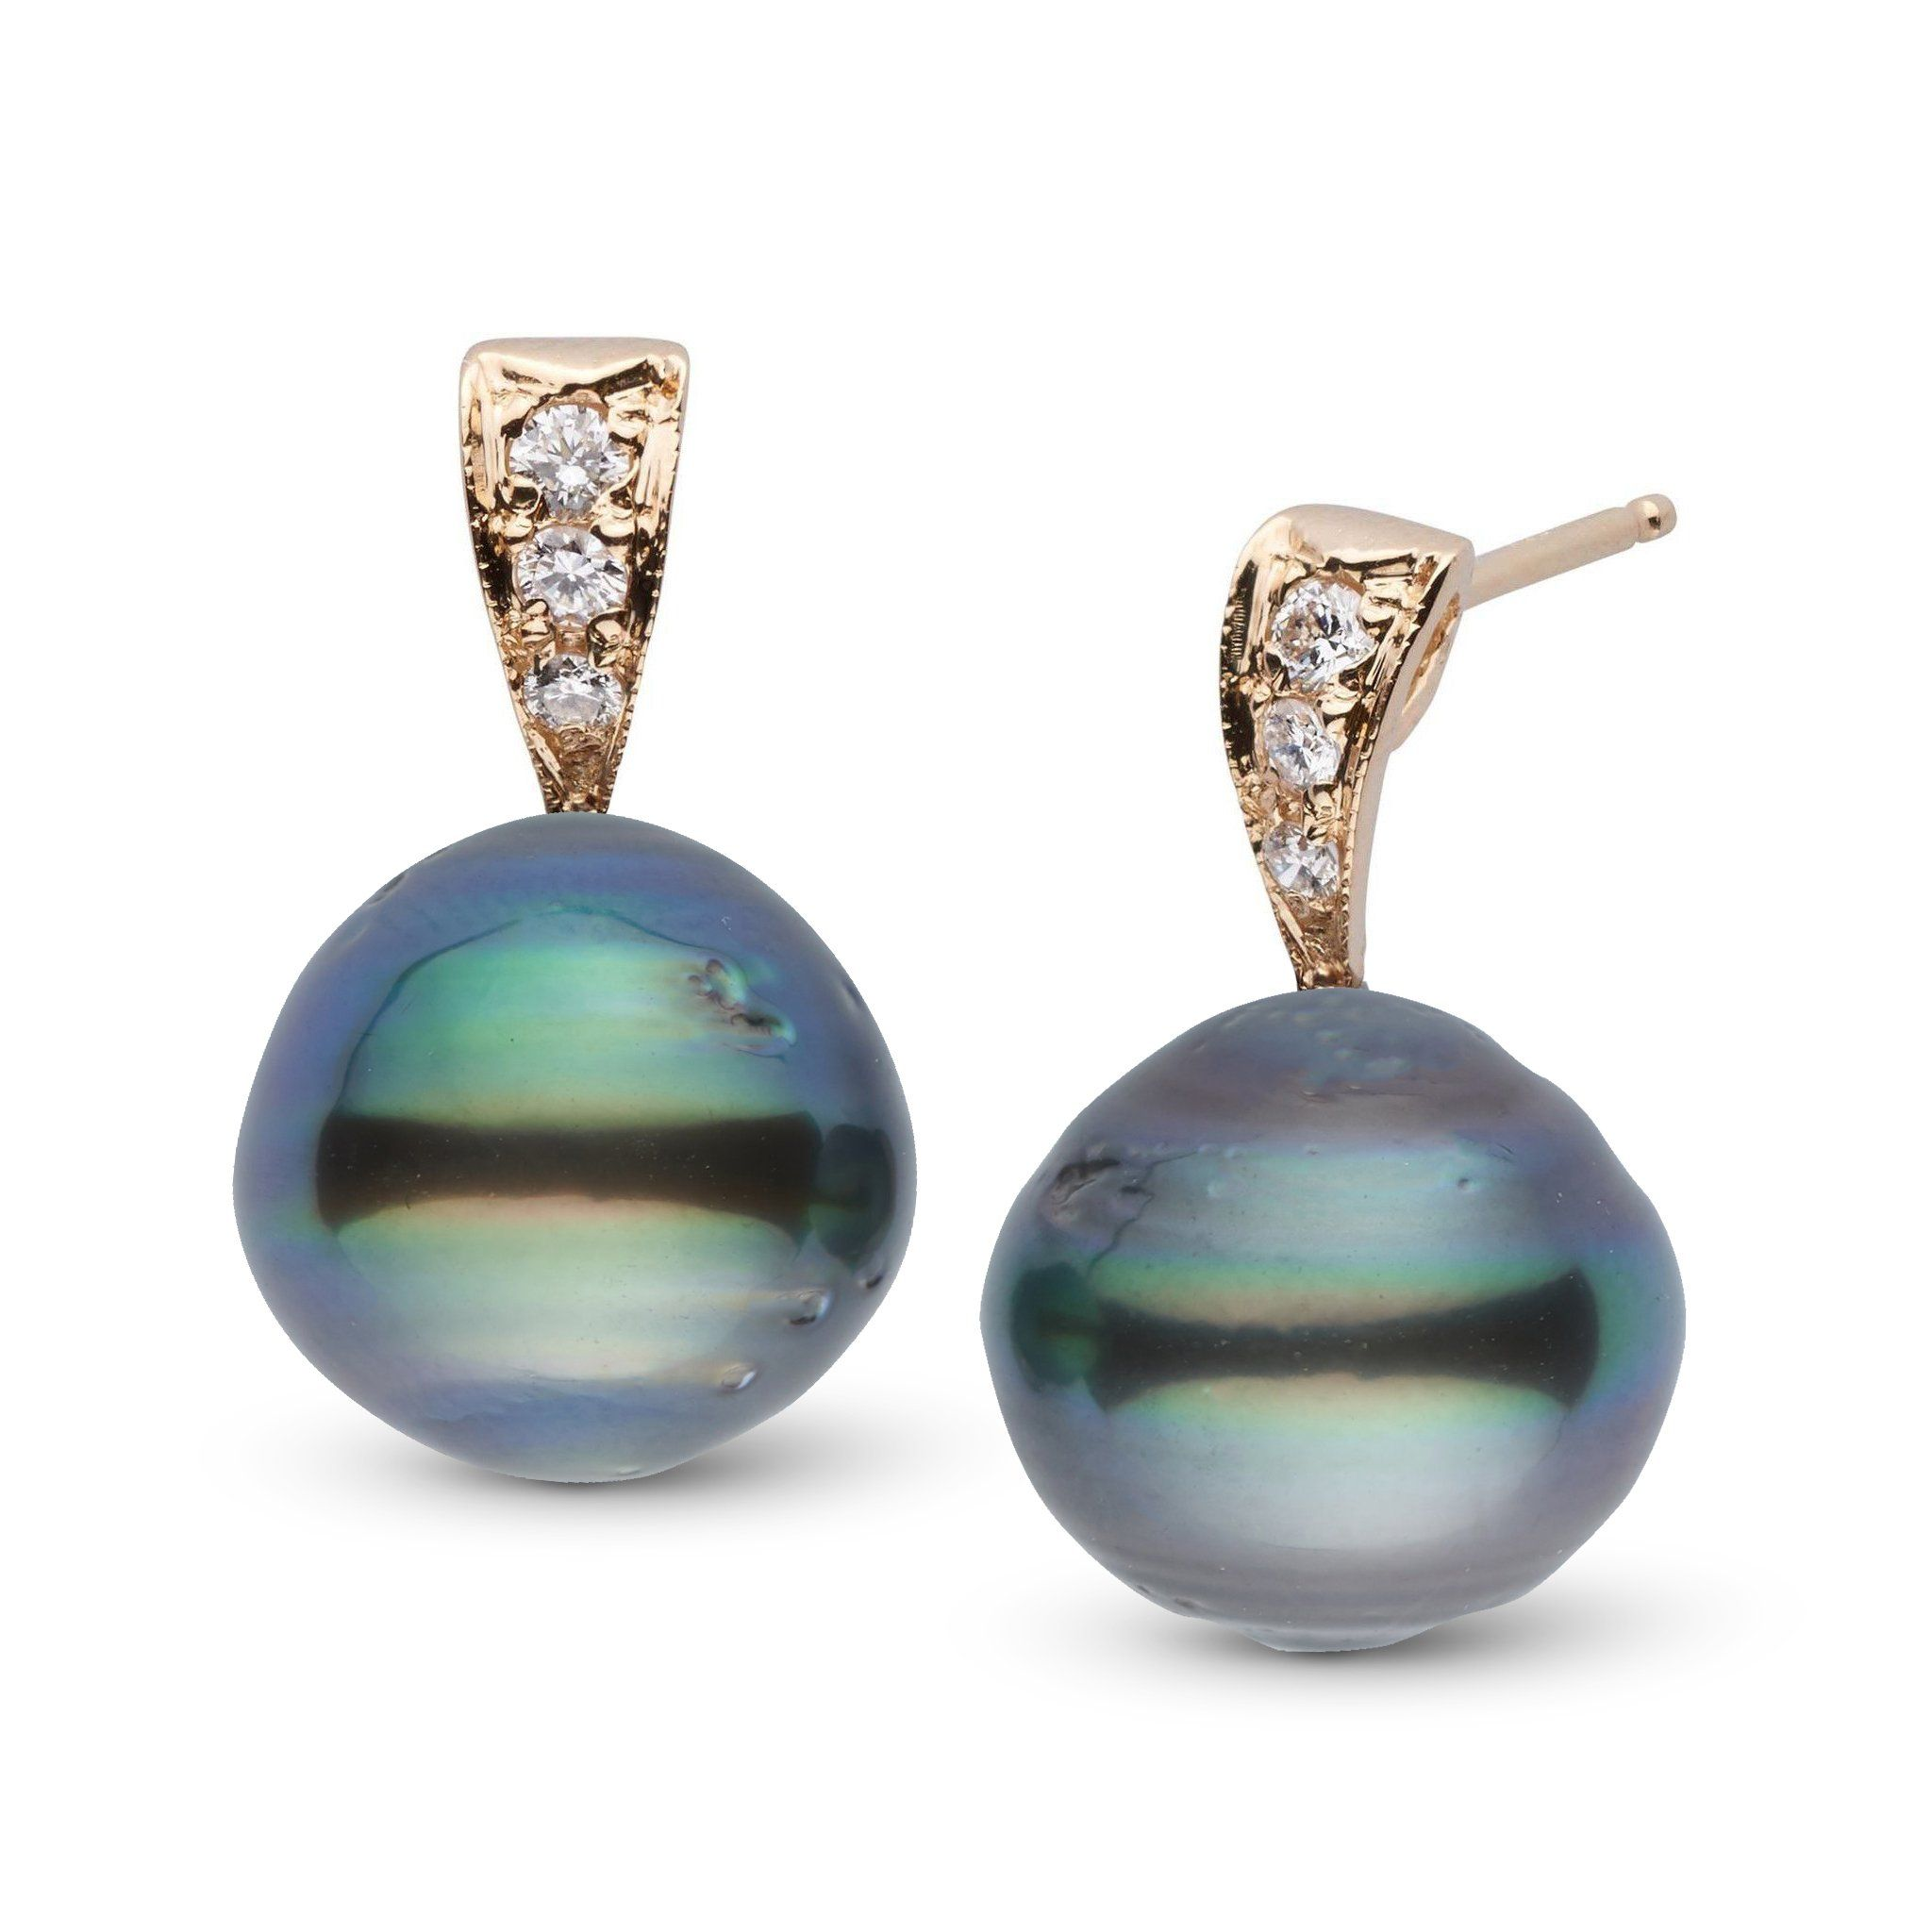 Desire Collection 11.0-12.0 mm Baroque Tahitian Pearl & Diamond Earrings